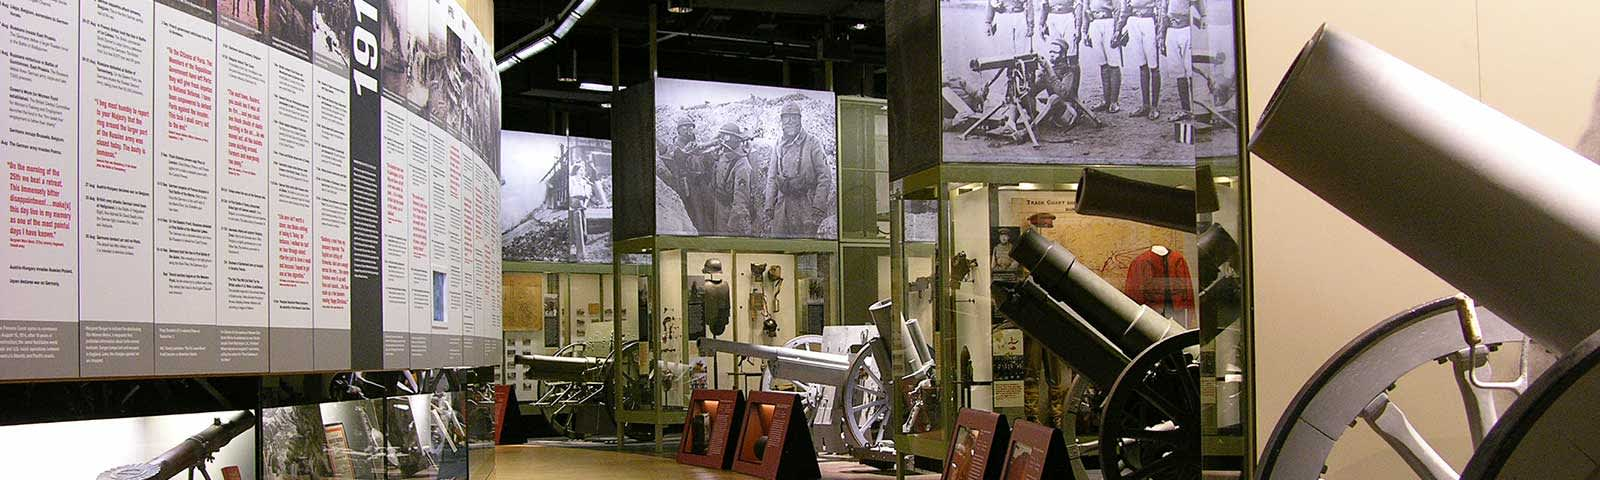 Histor-Buff-Vacation-Ideas-Overland-Park-WW1-Museum